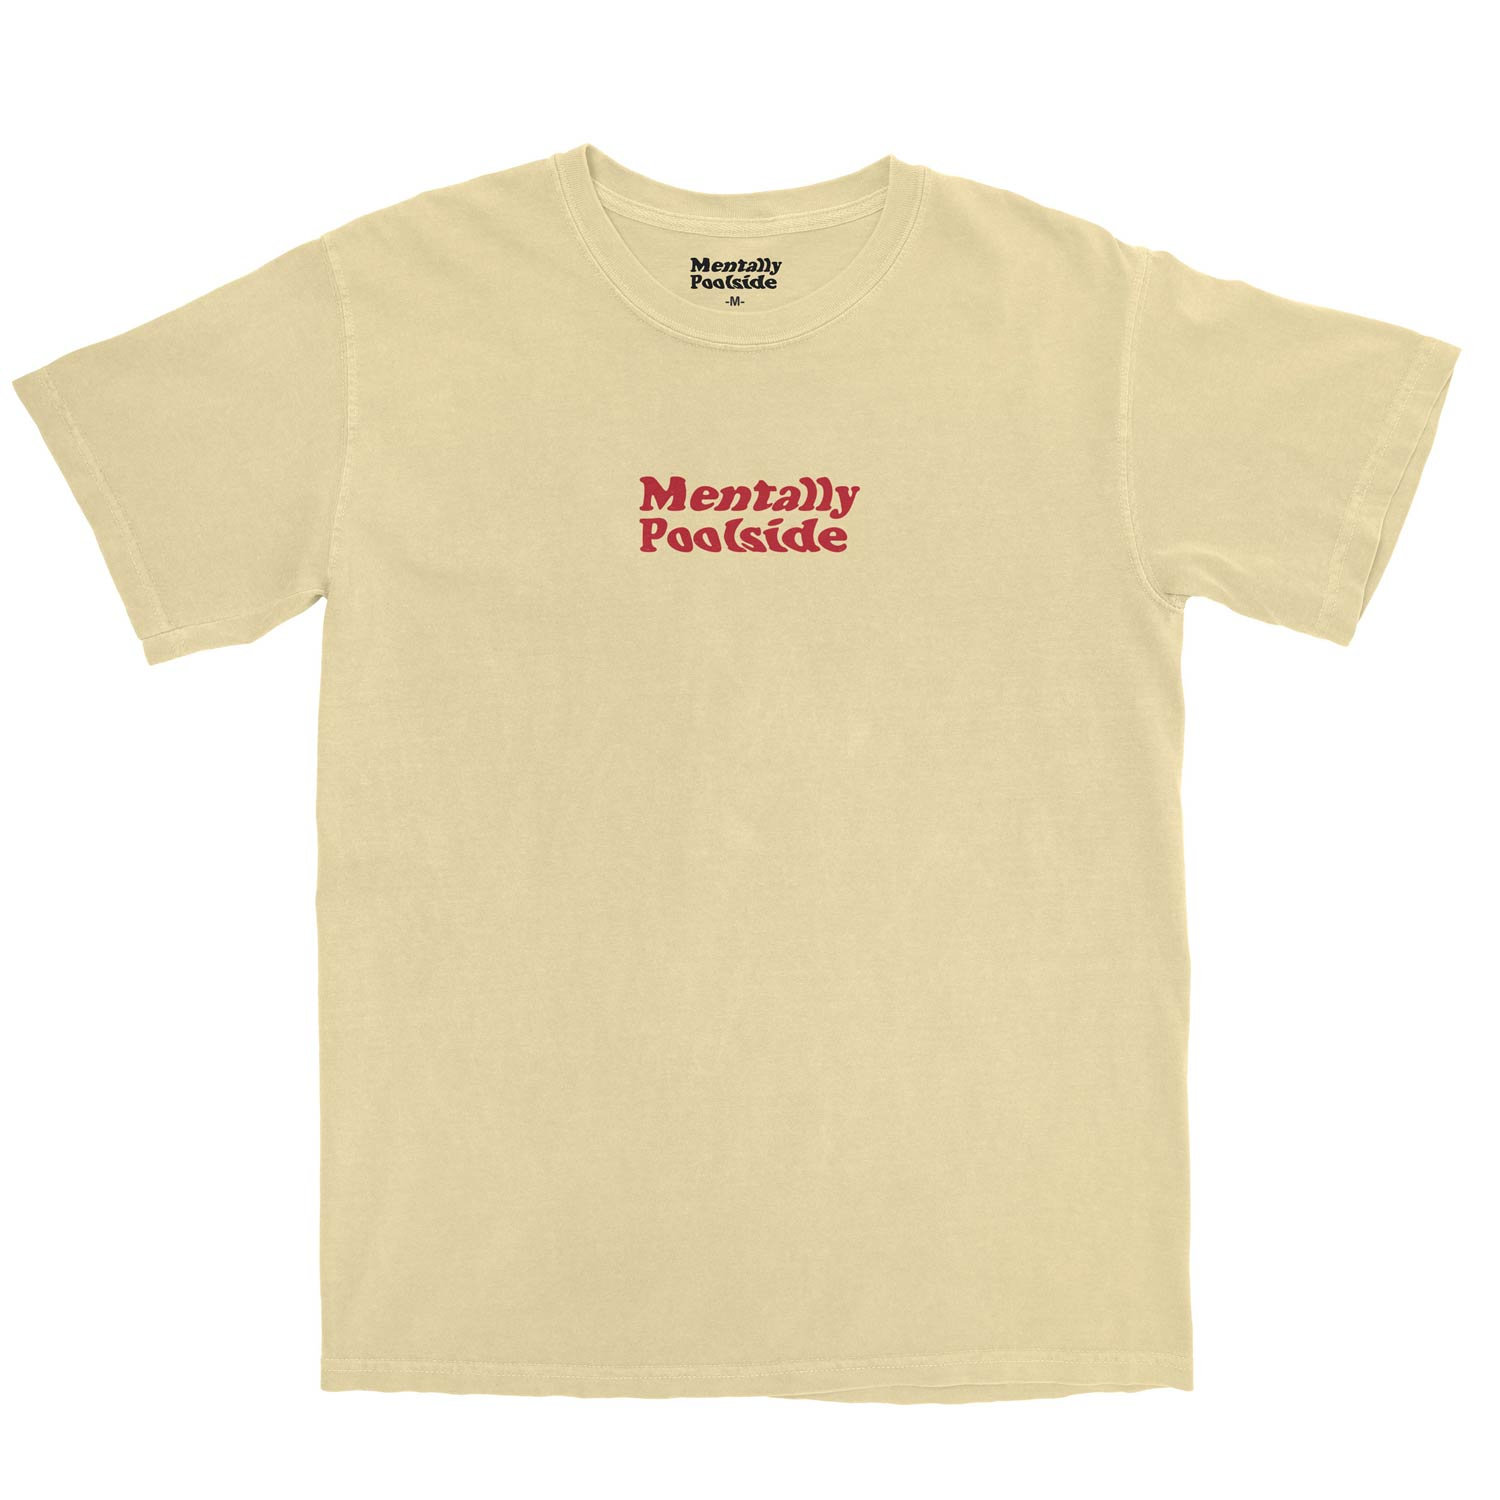 Mentally Poolside OG Tee-Tee shirt-Comfort colors-Butter-S-Mentally Poolside